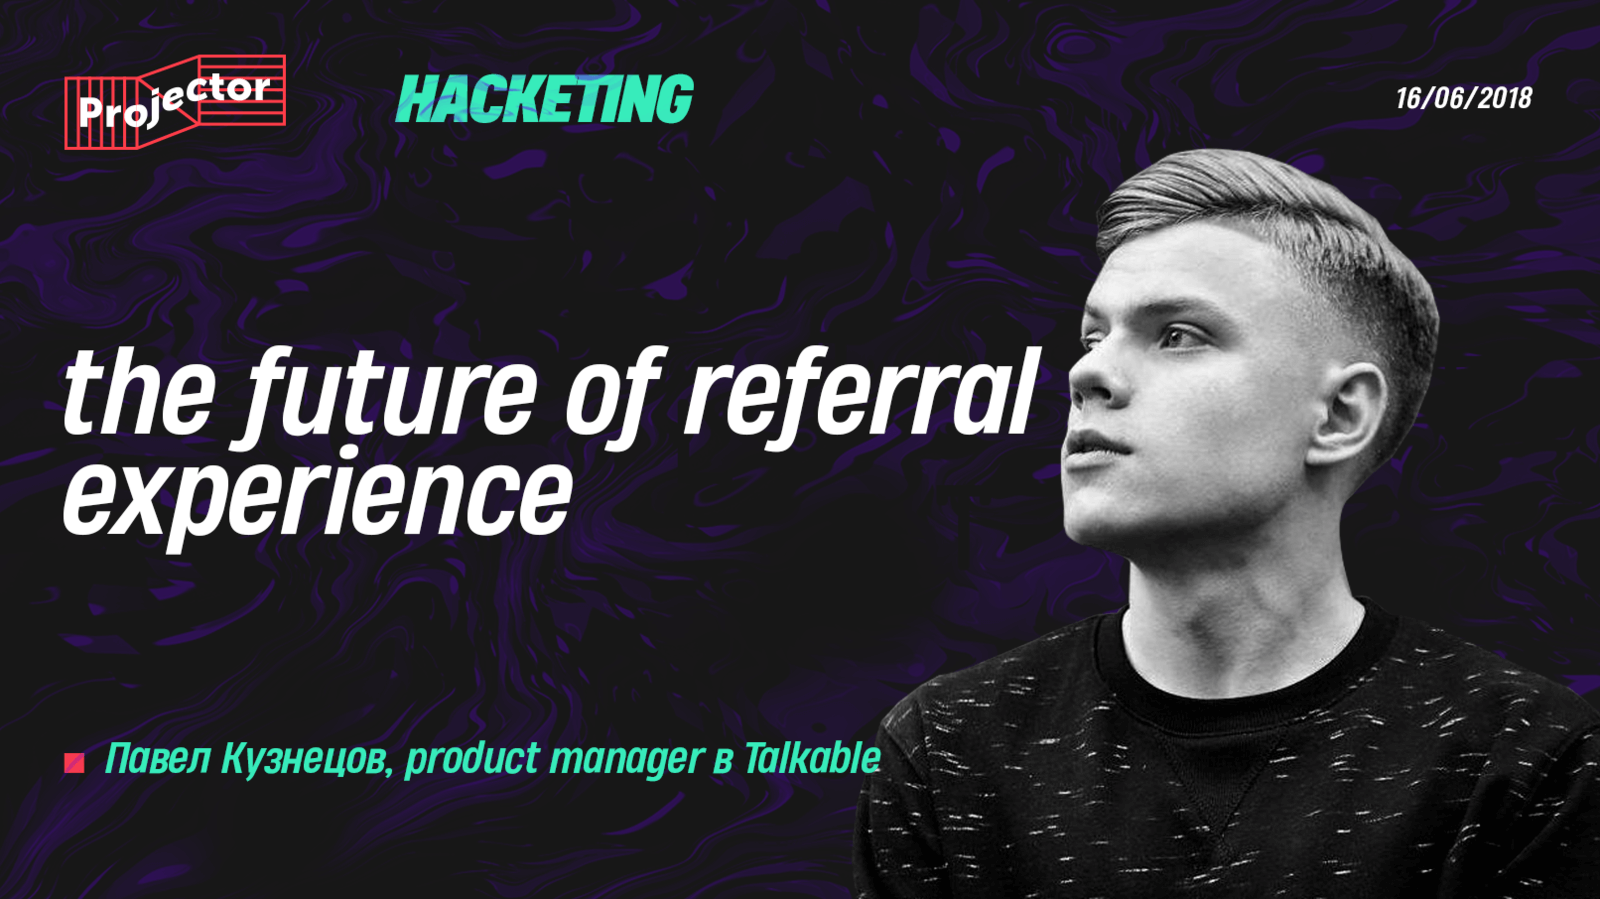 The future of referral experience